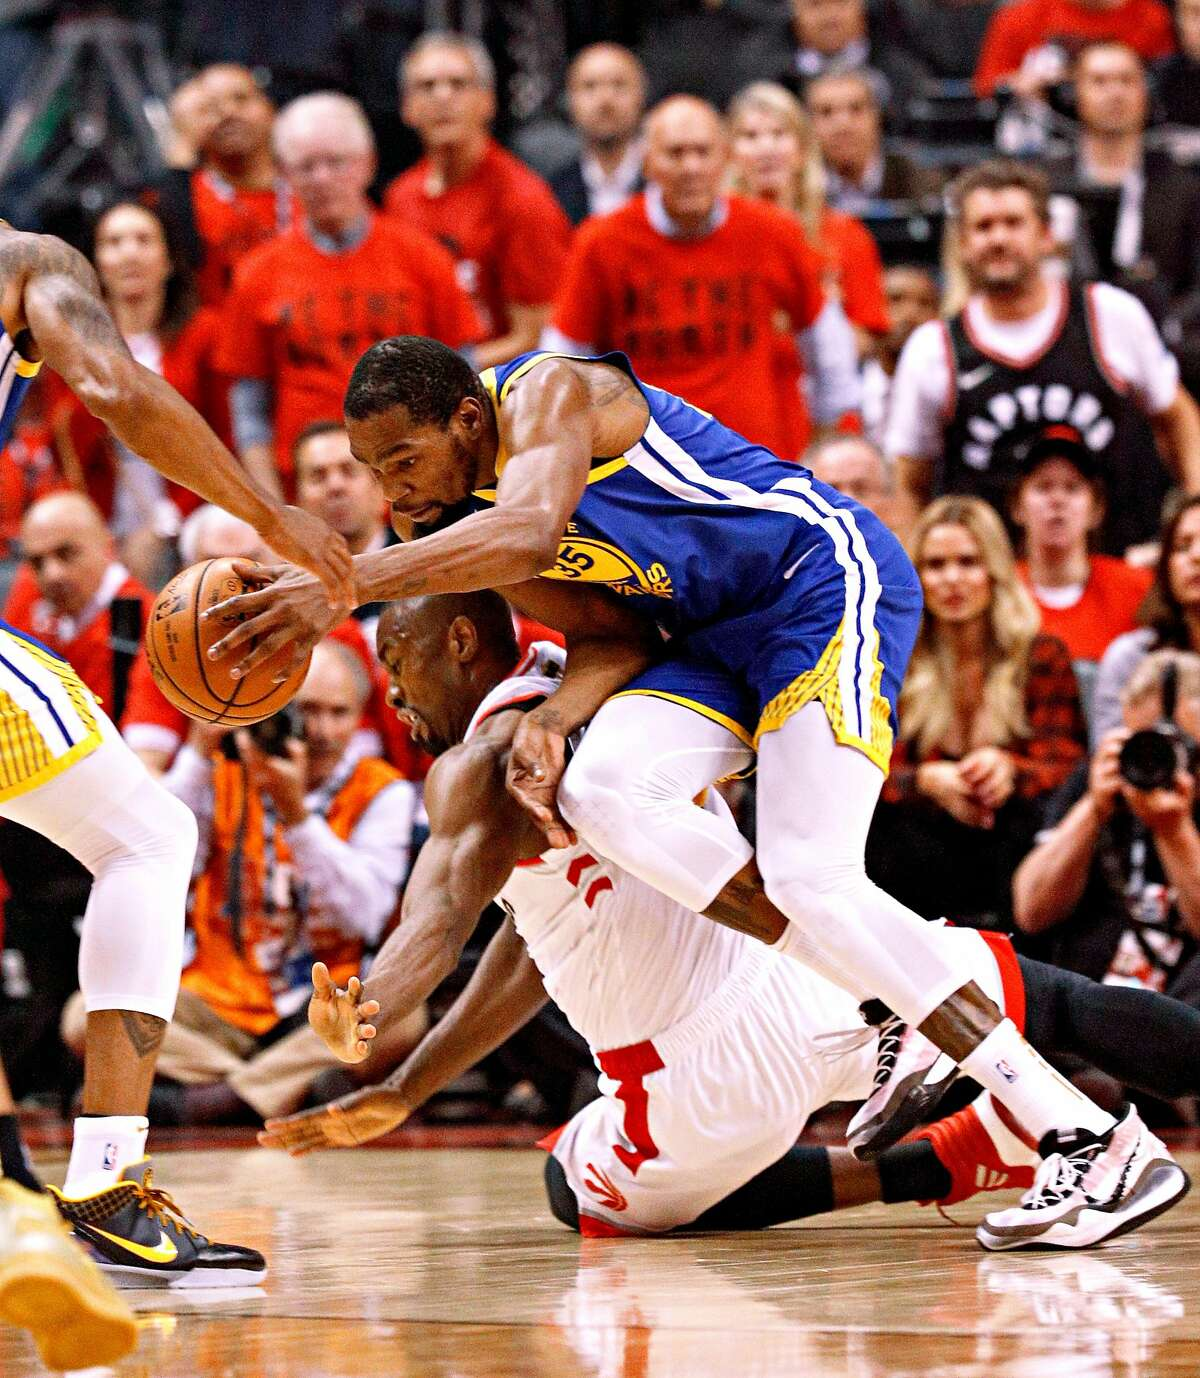 Golden State Warriors� Kevin Durant gets tripped up on Toronto Raptors� Serge Ibaka in the first quarter during game 5 of the NBA Finals between the Golden State Warriors and the Toronto Raptors at Scotiabank Arena on Monday, June 10, 2019 in Toronto, Ontario, Canada.